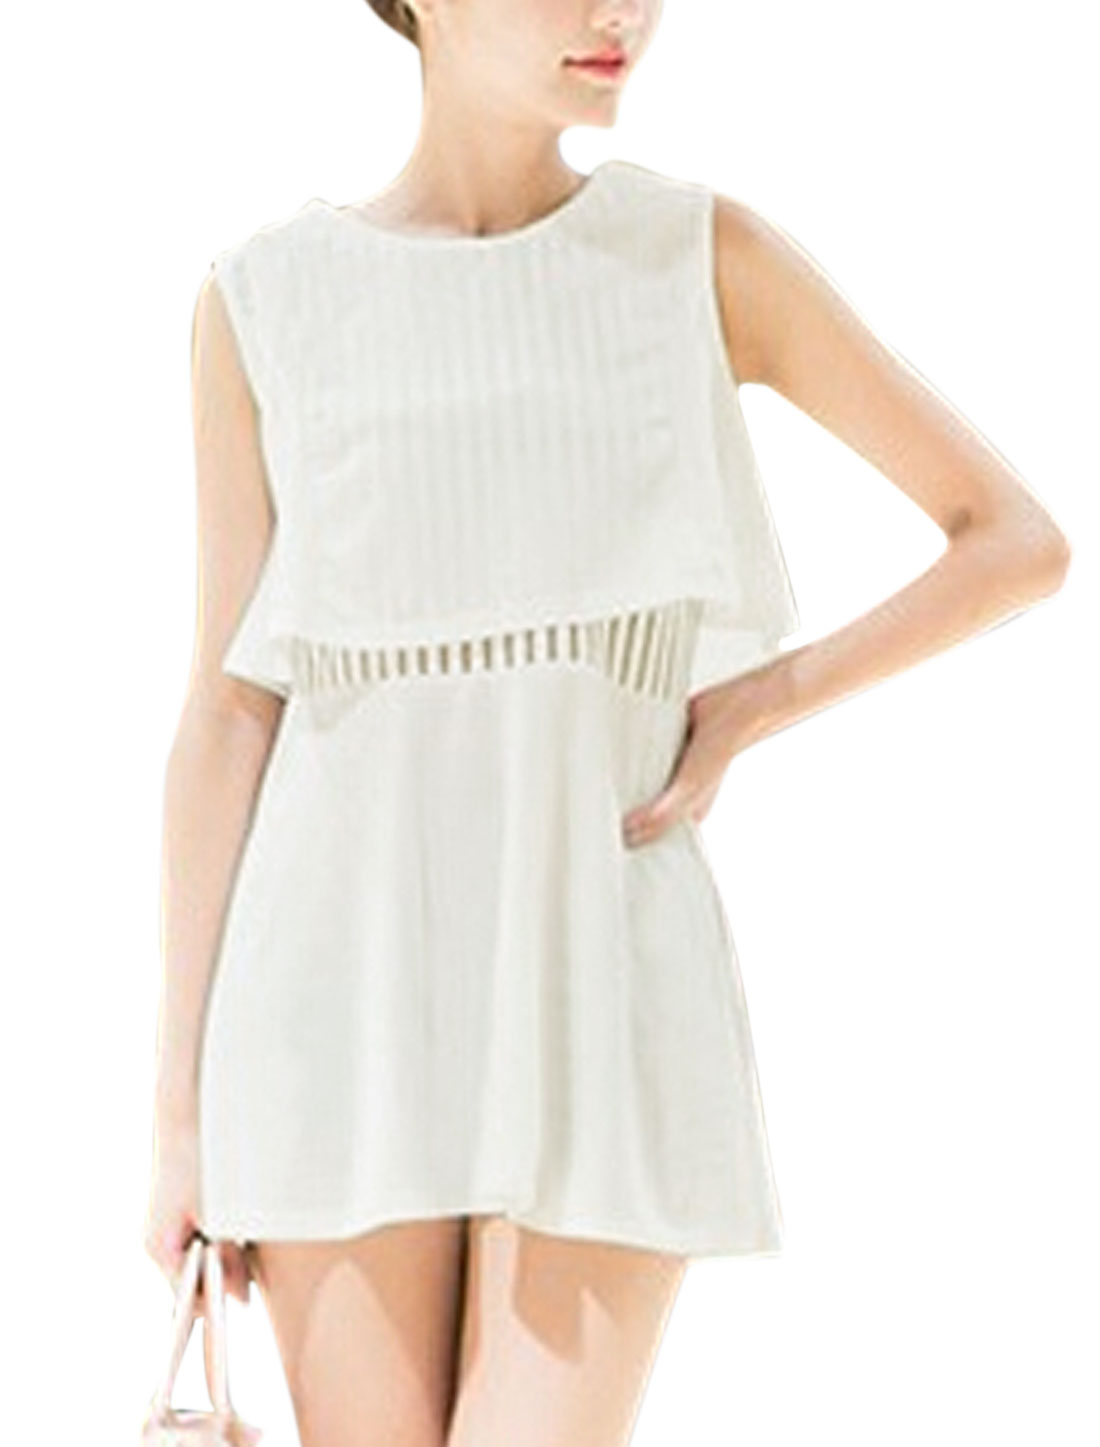 Lady Sleeveless Mesh Panel Layered Design A-Line Dress White S